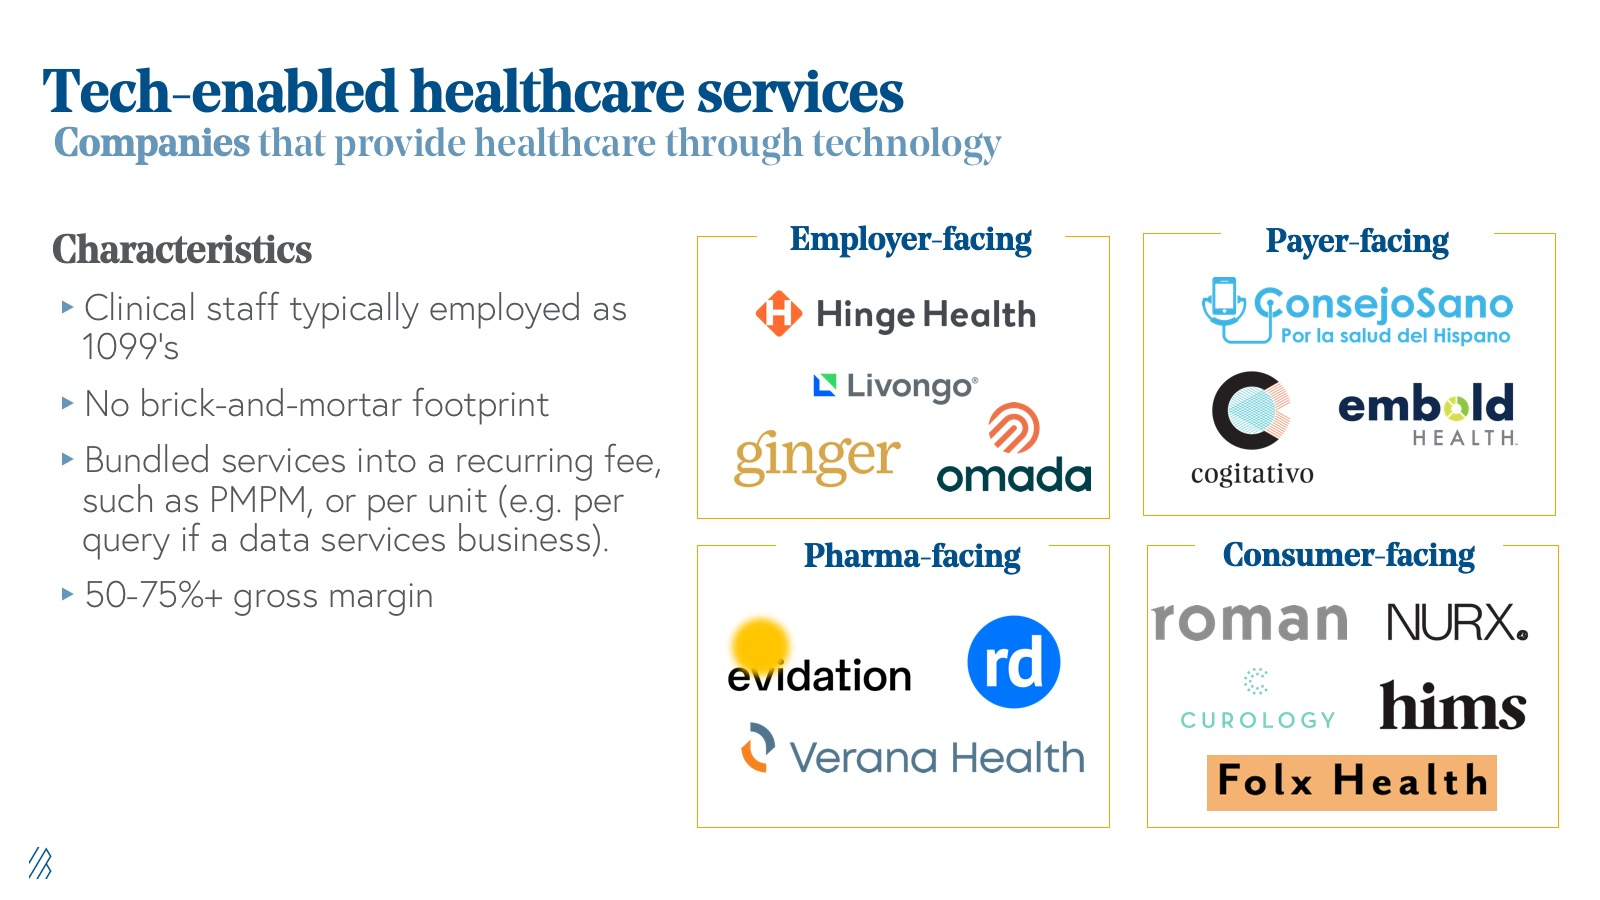 Tech-enabled healthcare services